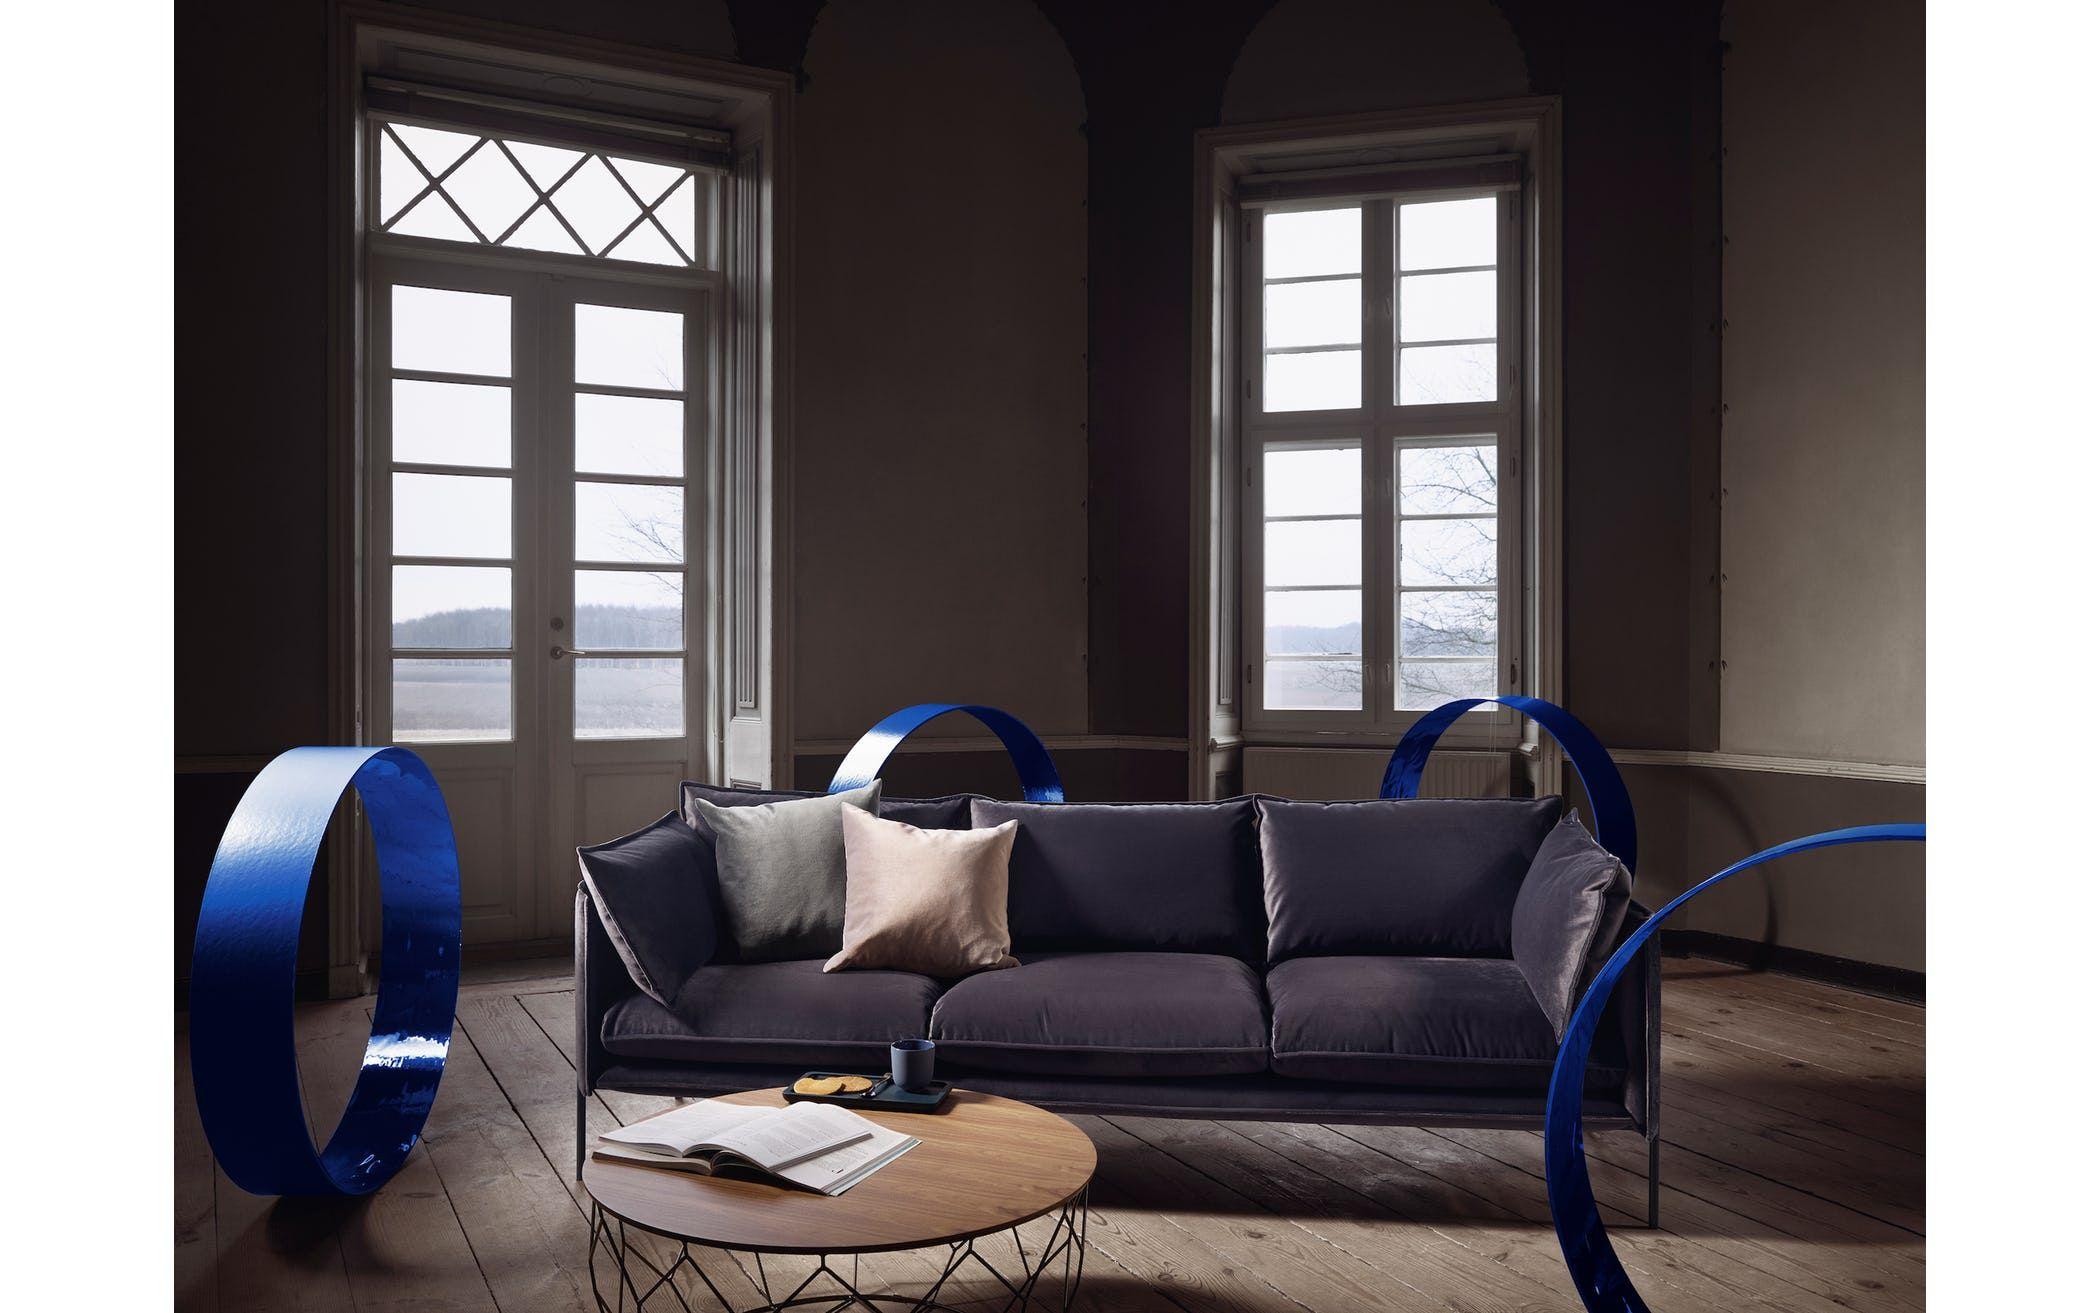 Shop the pepe sofa and more contemporary furniture designs by bolia at haute living